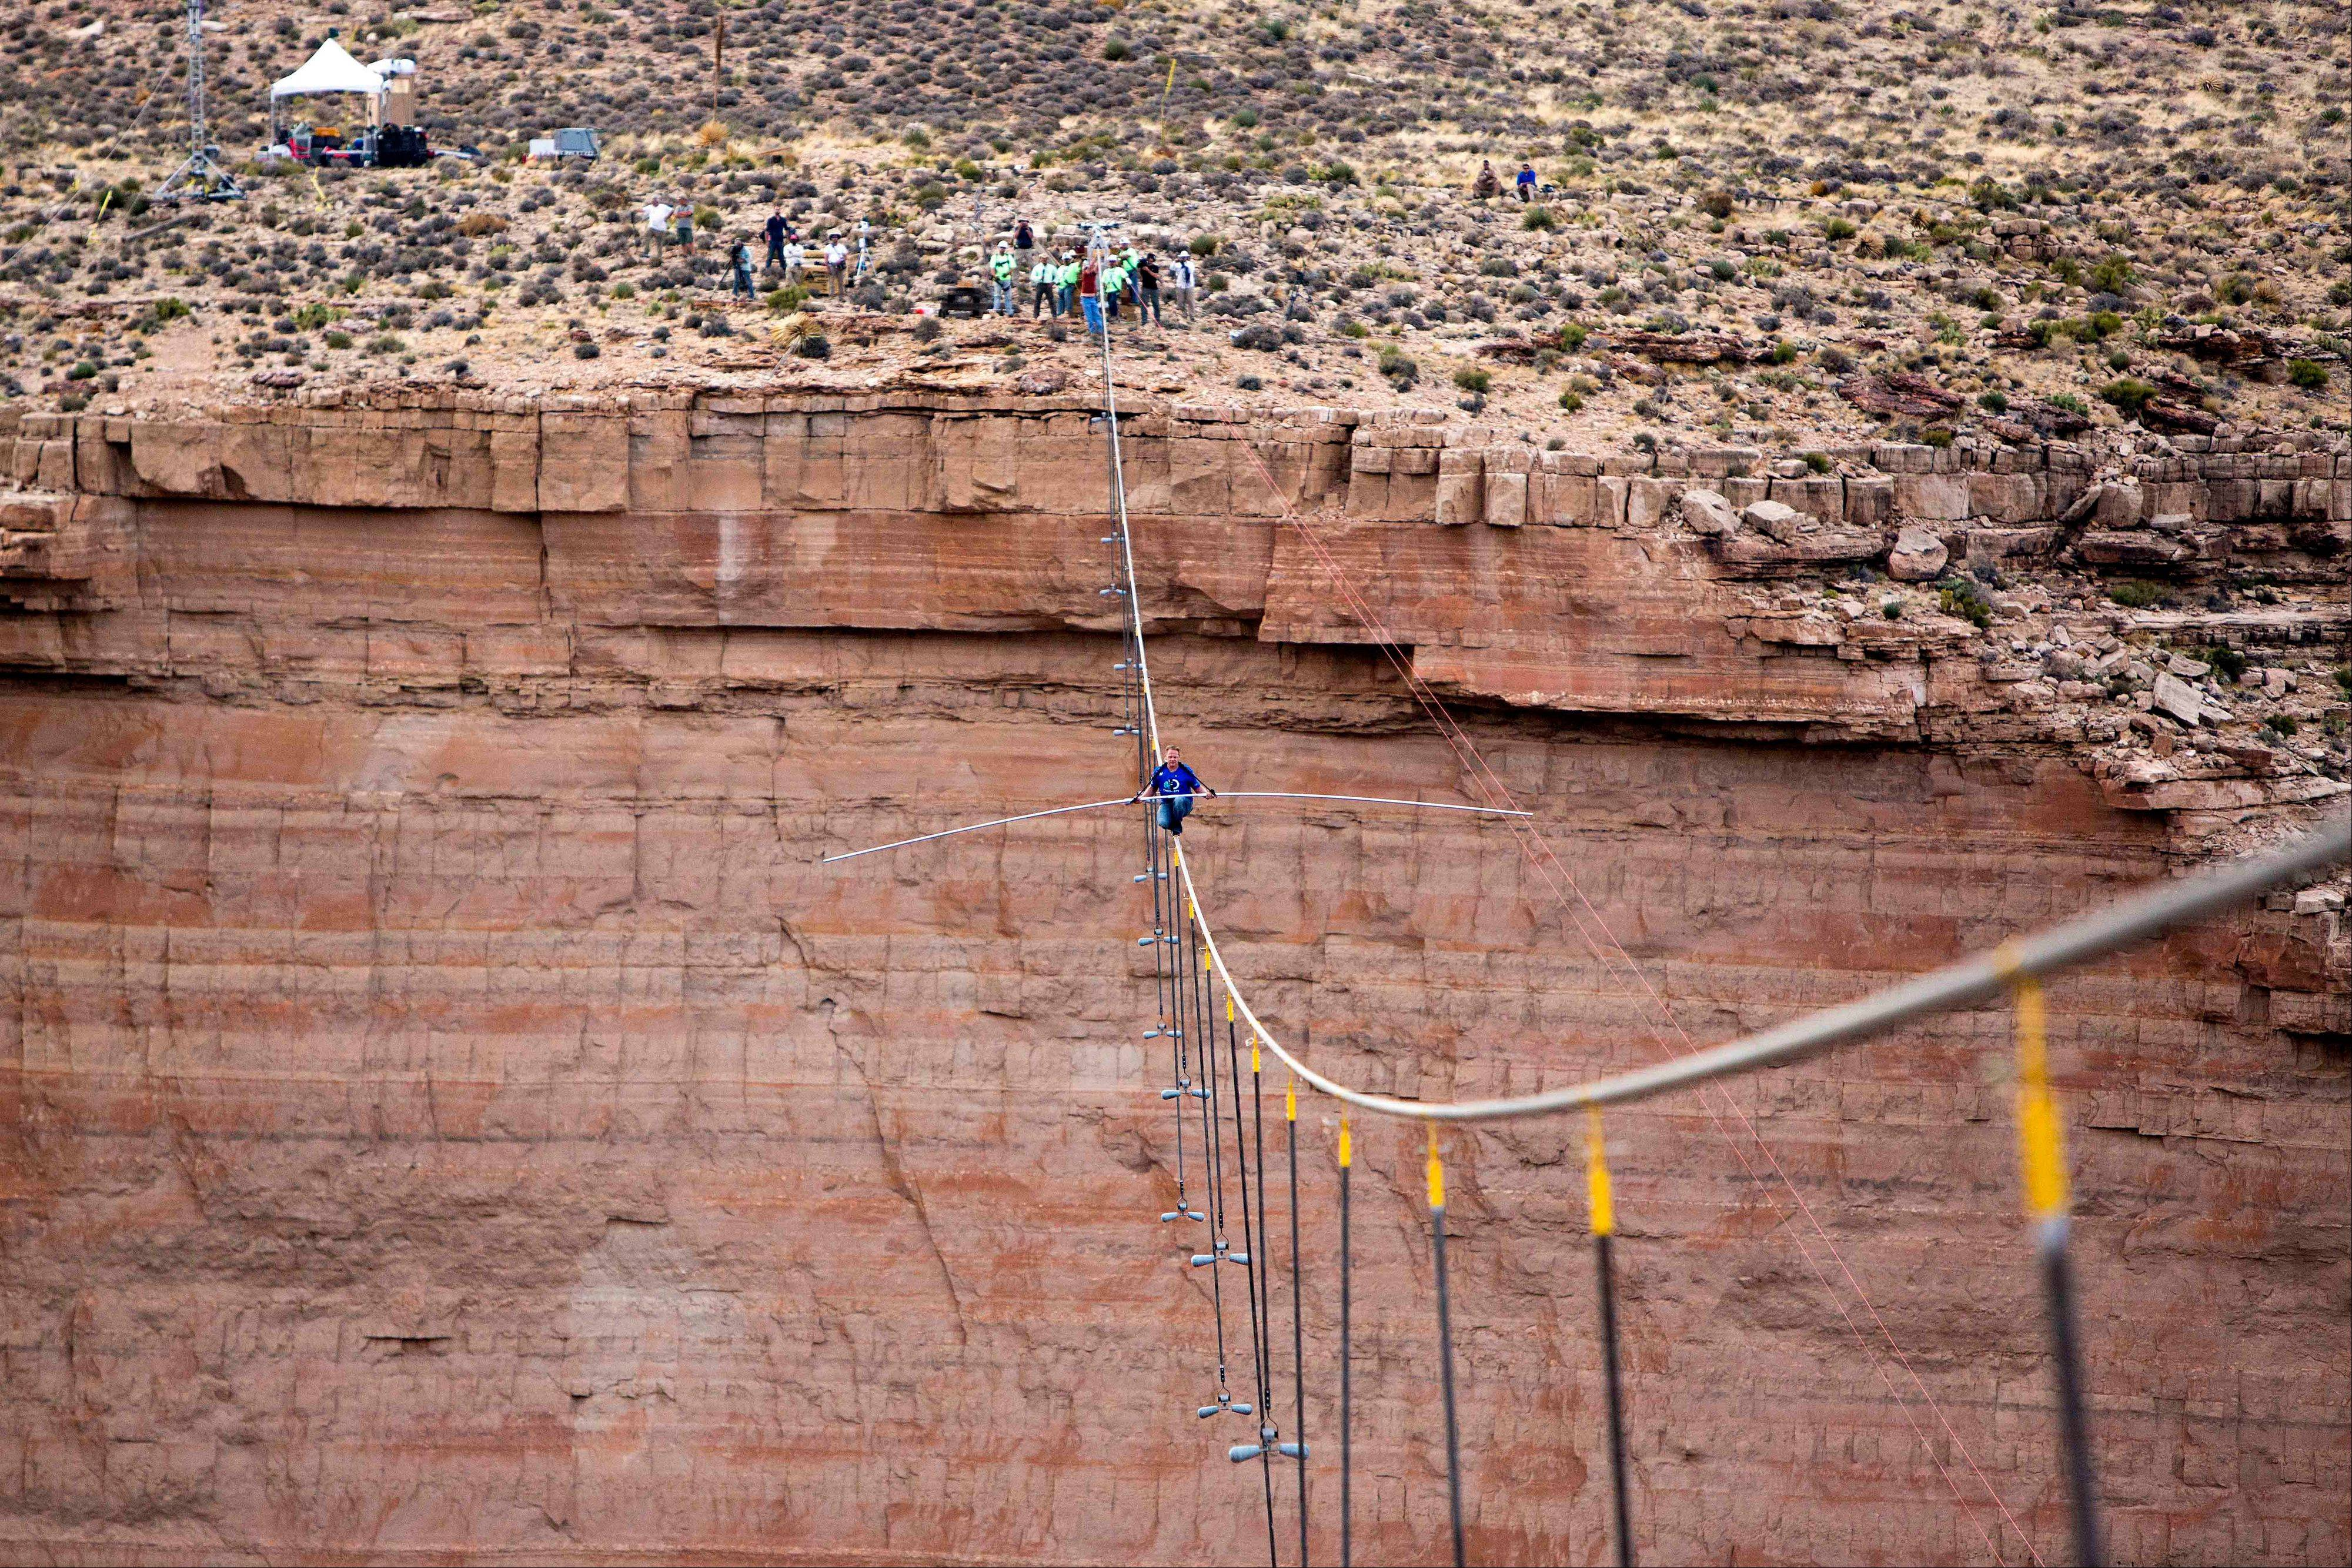 Aerialist Nik Wallenda pauses during his quarter mile walk over the Little Colorado River Gorge in northeastern Arizona on Sunday, June 23, 2013. The daredevil successfully traversed a tightrope strung 1,500 feet above the chasm near the Grand Canyon in just more than 22 minutes, pausing and crouching twice as winds whipped around him and the cable swayed.